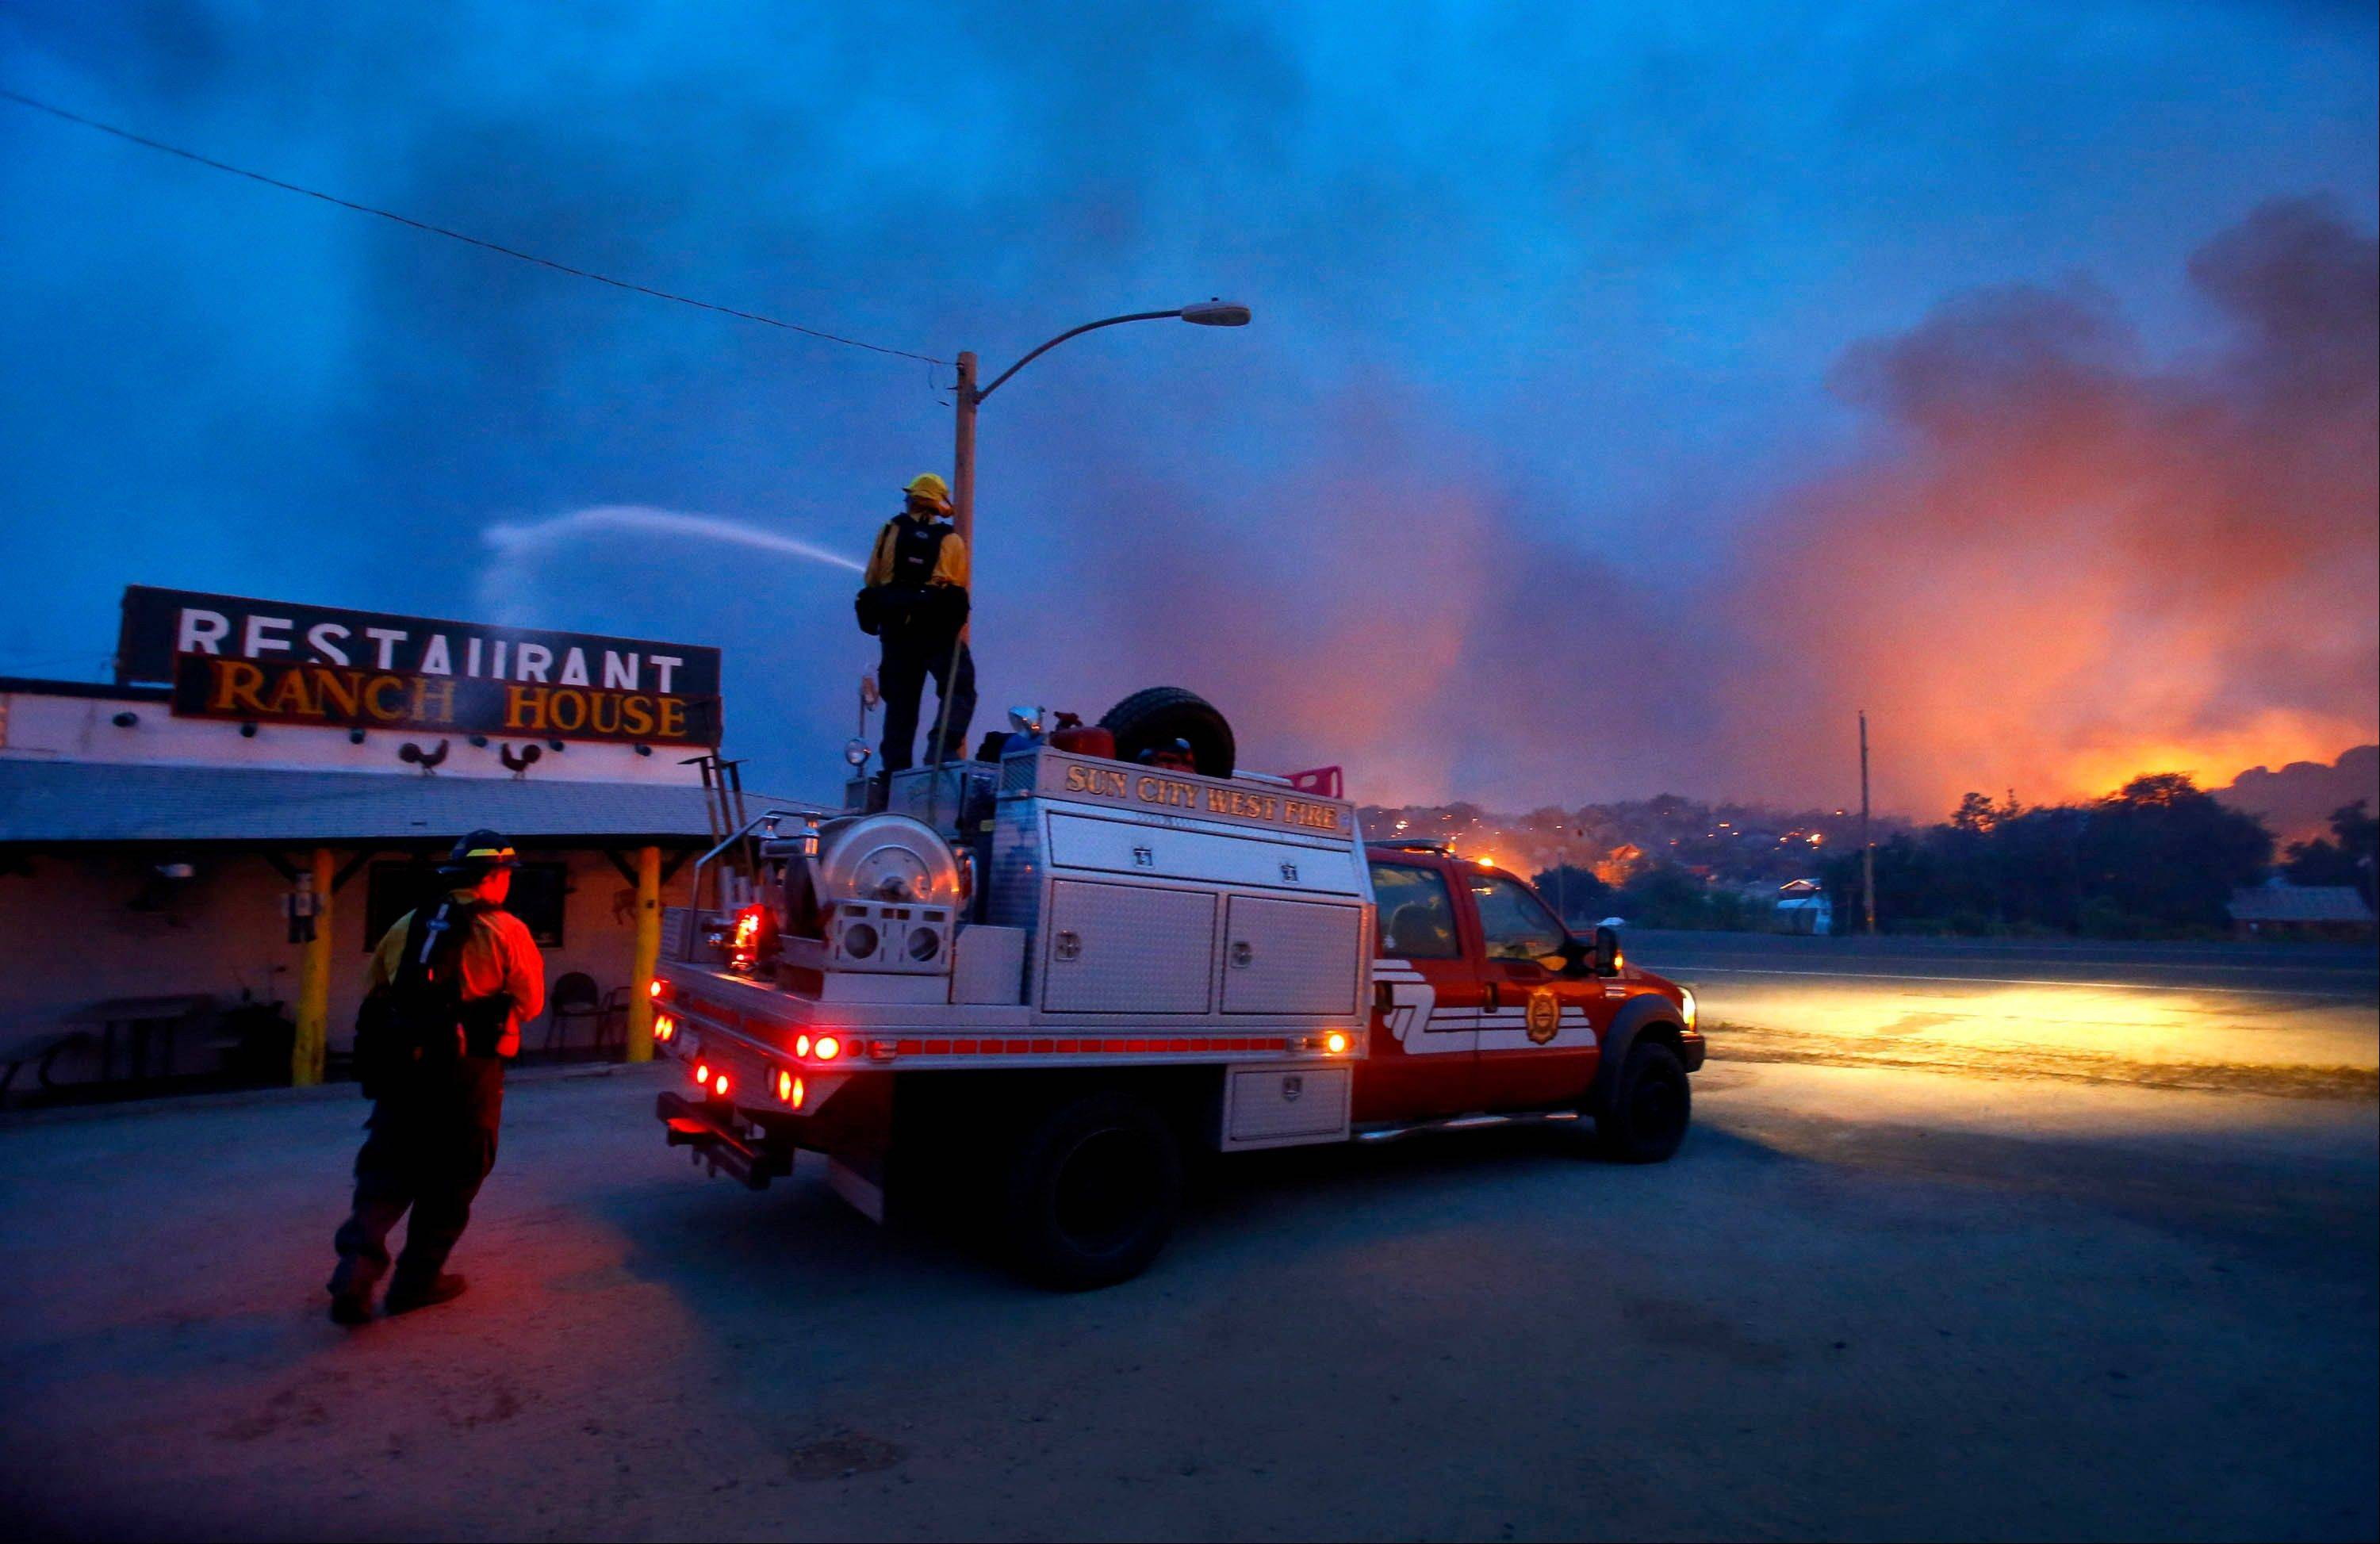 Firefighters spray water on a restaurant to help protect it from flames in the Glenn Ilah area near Yarnell, Ariz. on Sunday, June 30, 2013. An Arizona fire chief says the wildfire that killed 19 members of his crew near the town was moving fast and fueled by hot, dry conditions. The fire started with a lightning strike on Friday and spread to 2,000 acres on Sunday amid triple-digit temperatures.